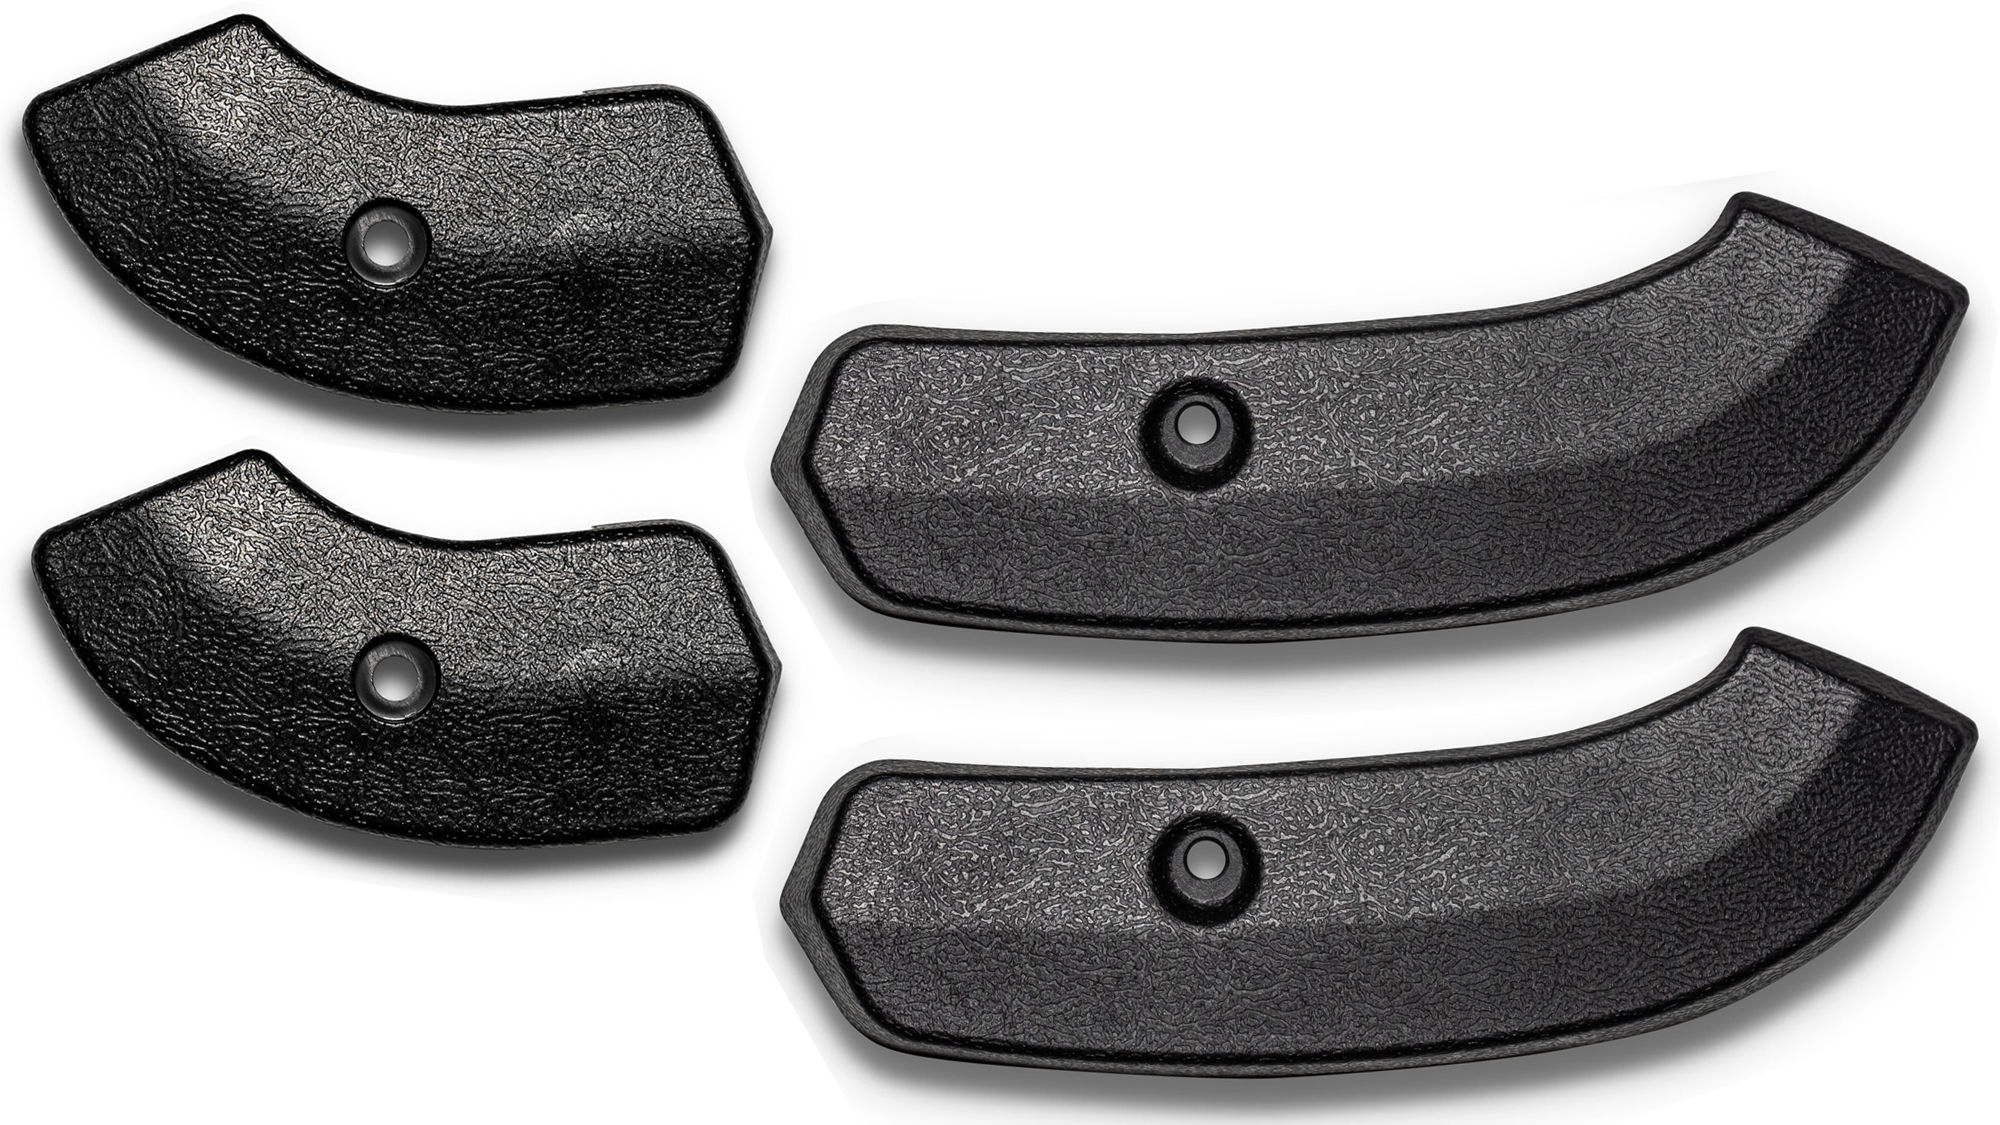 Front Bucket Seat Hinge Covers - Black, Full Set, 66-67 Ford Bronco, New